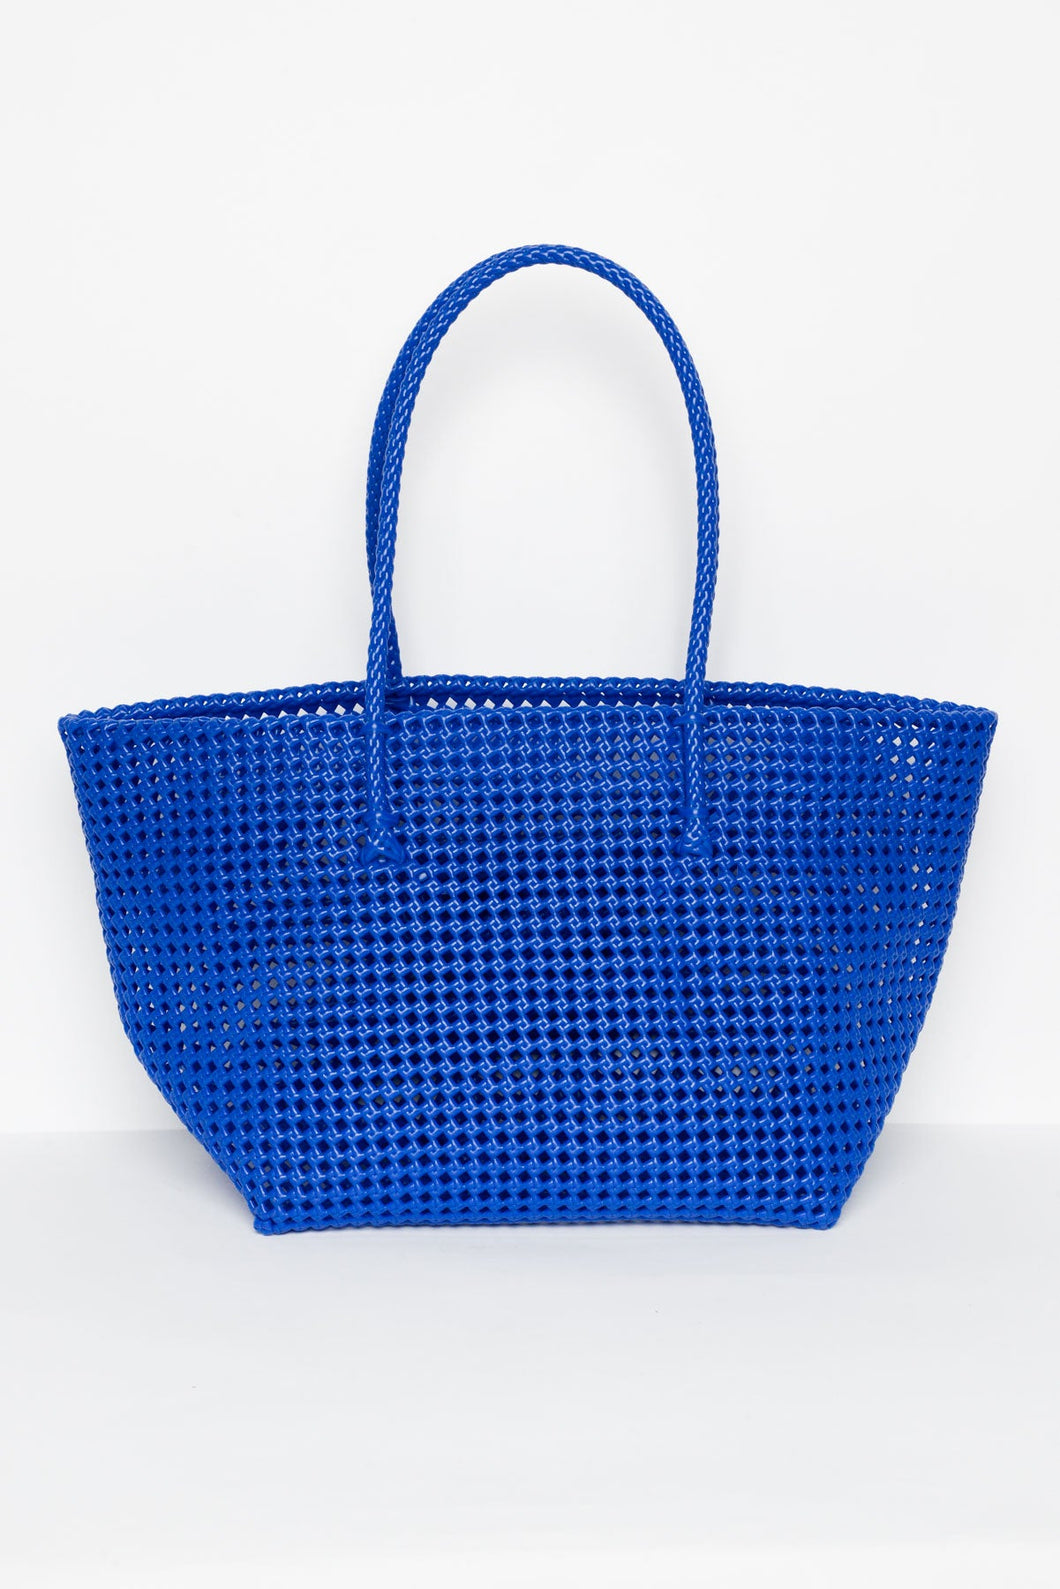 Shelly Cobalt Recycled Weave Tote - Langdon Luxury - Blue Bungalow Online